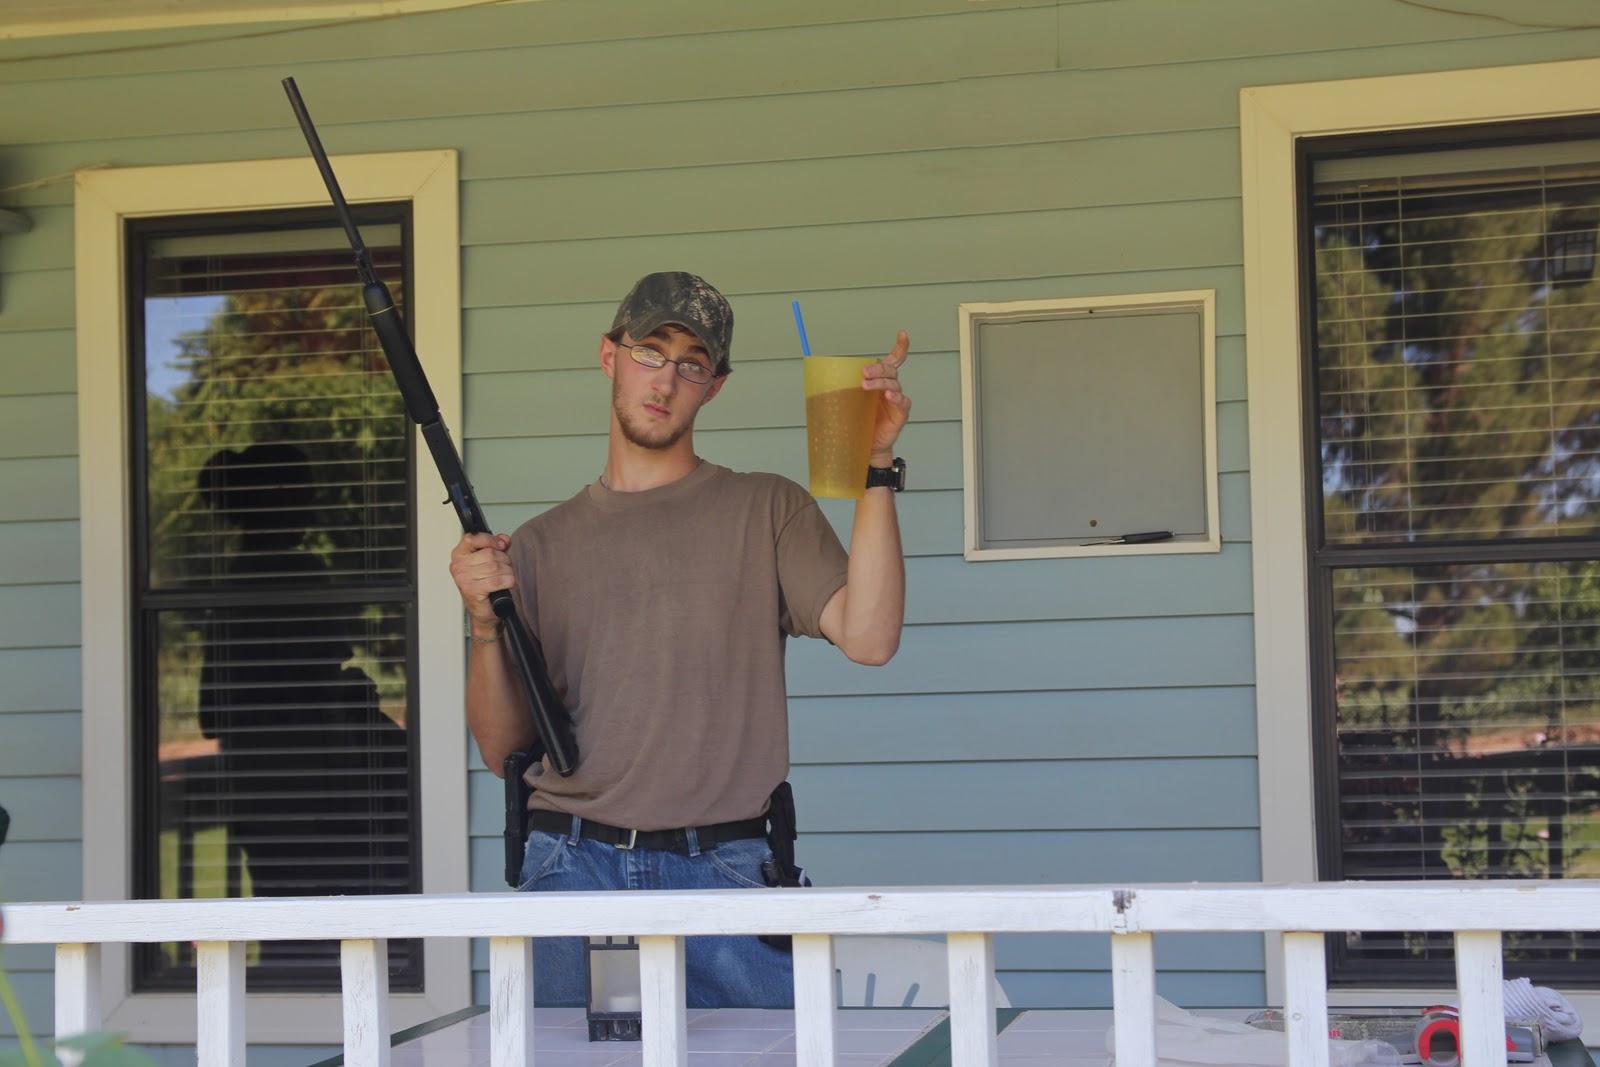 Redneck luxury sighting in a pellet gun on the front porch and drinking sweet tea does it get better than that